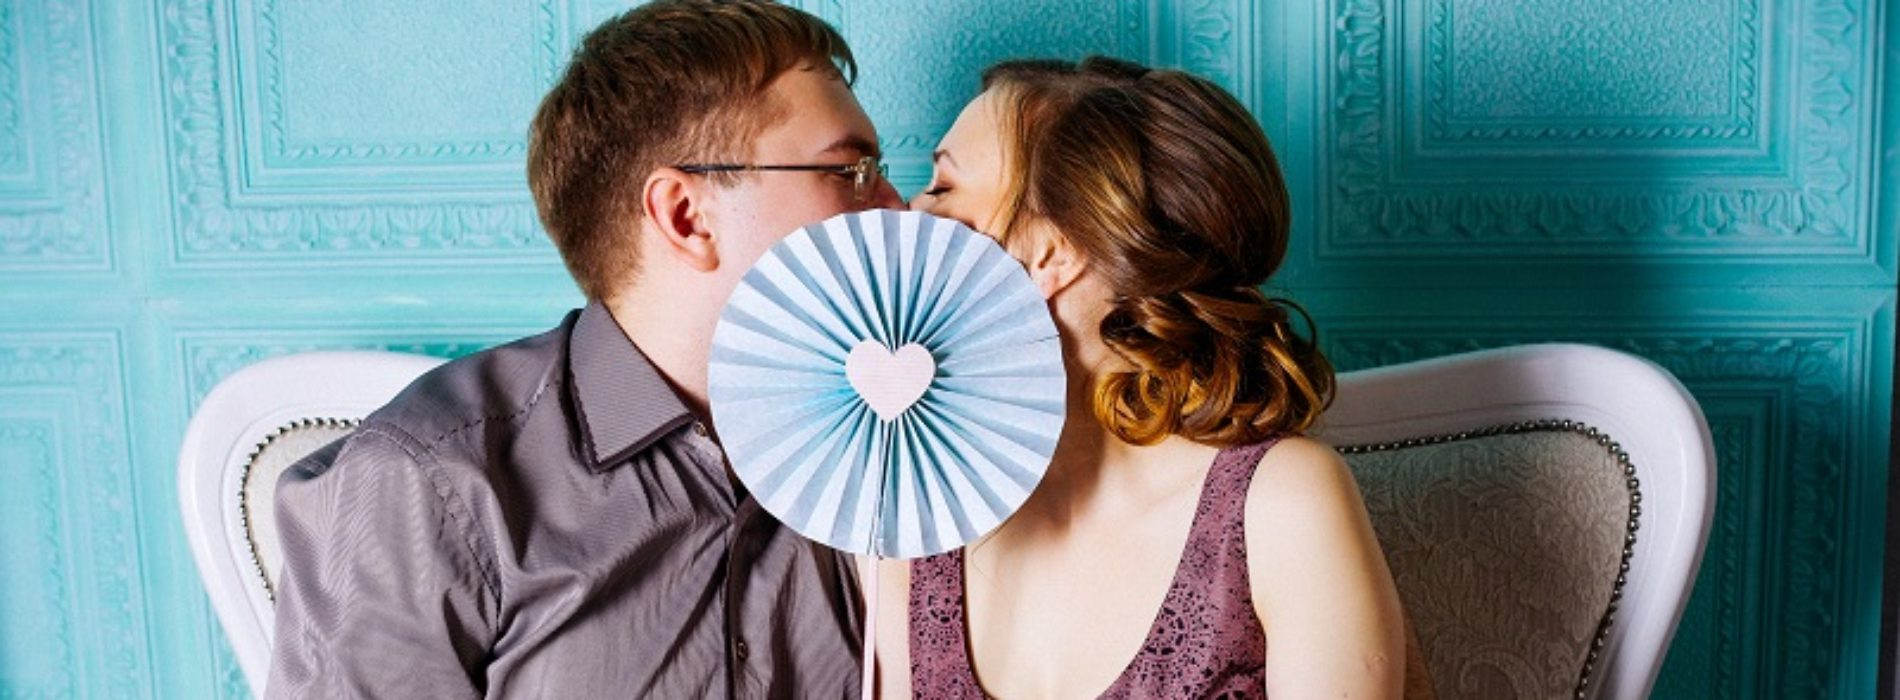 Asperger's: here's how to make the most of your positives to find love